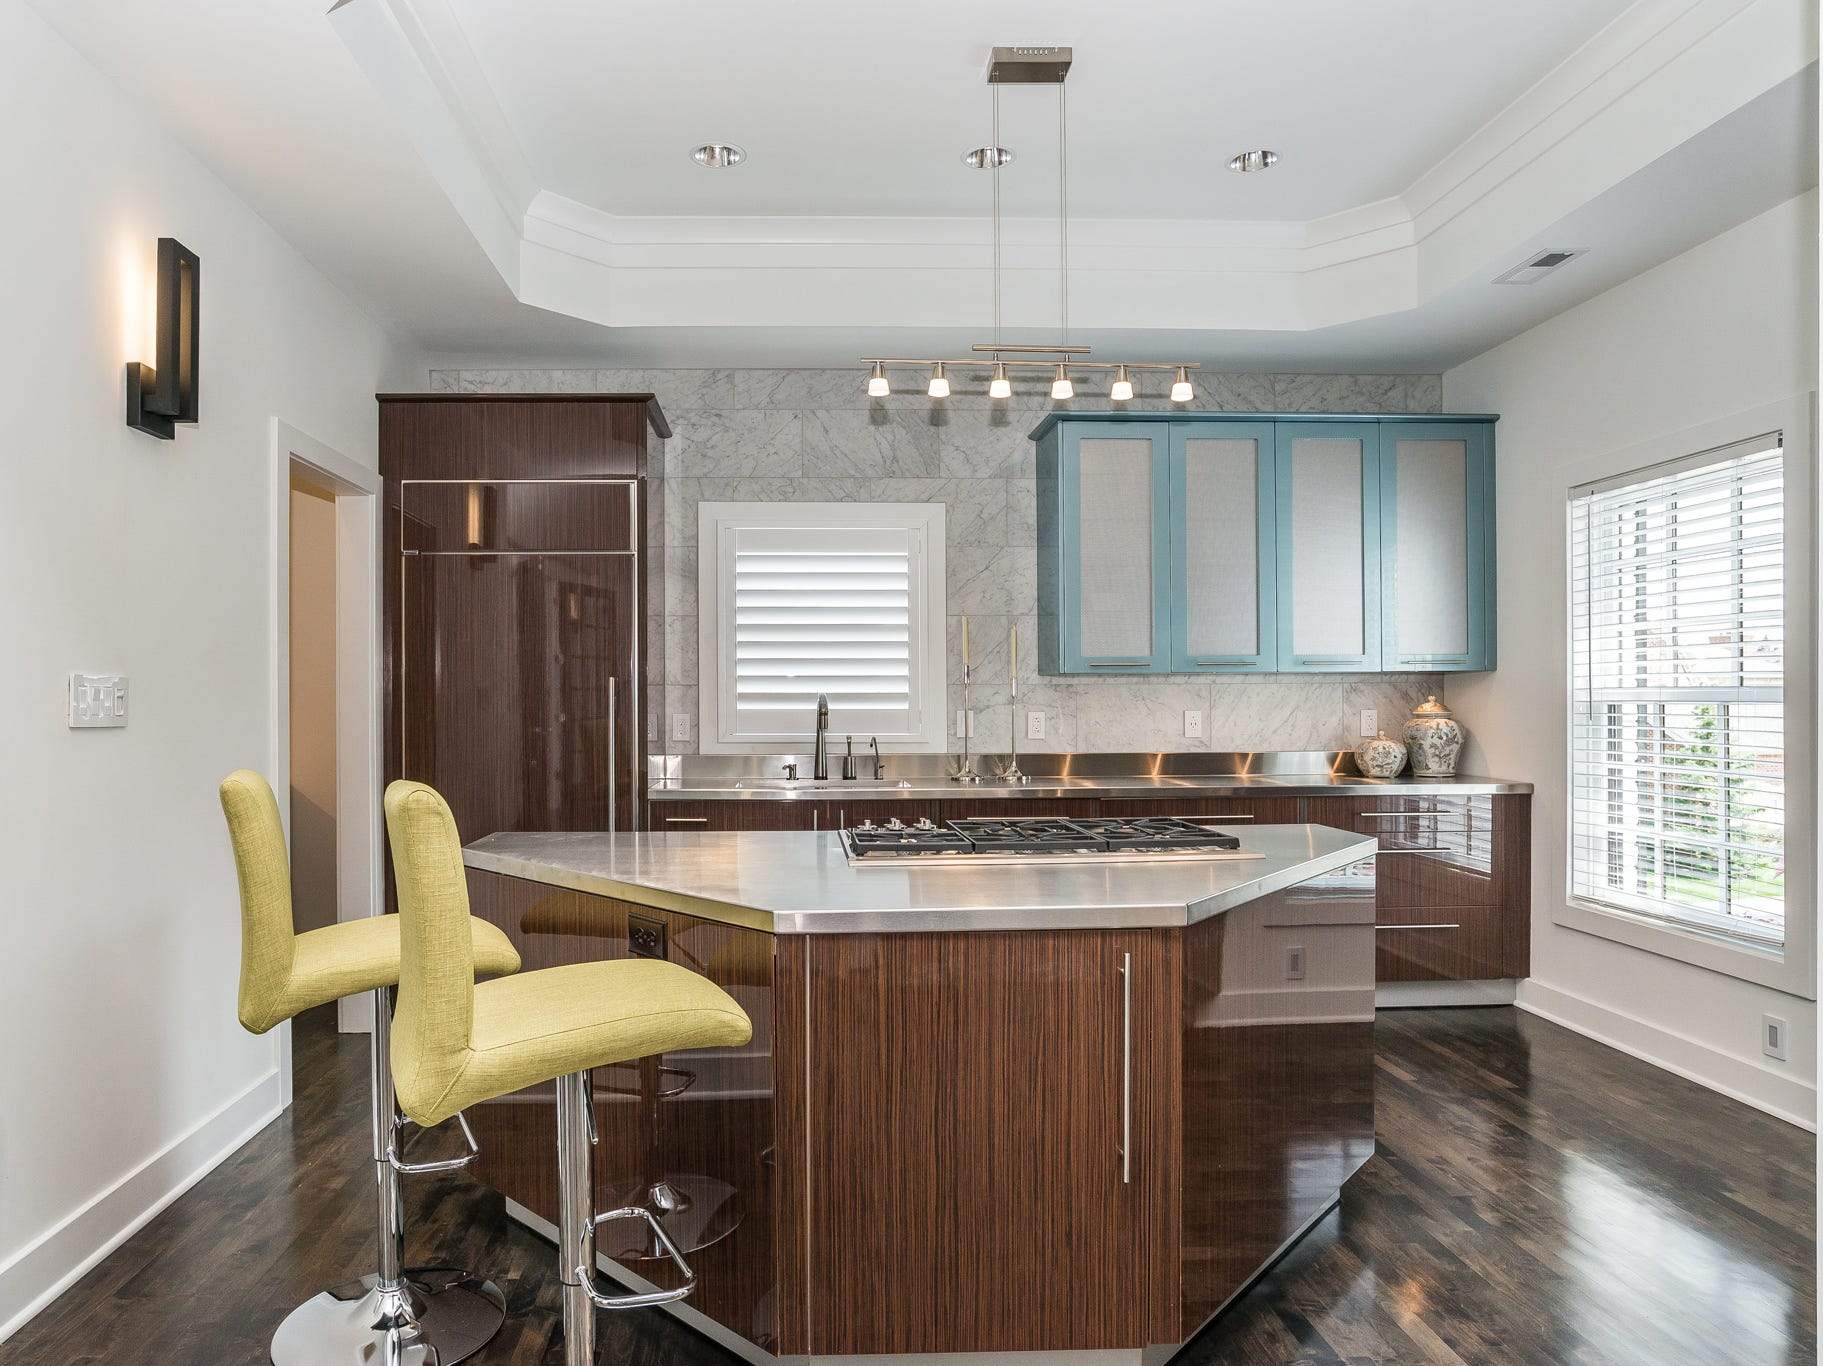 Owners stock the fridge with champagne, bottled water and snacks for each guest. The kitchen also includes cookware.